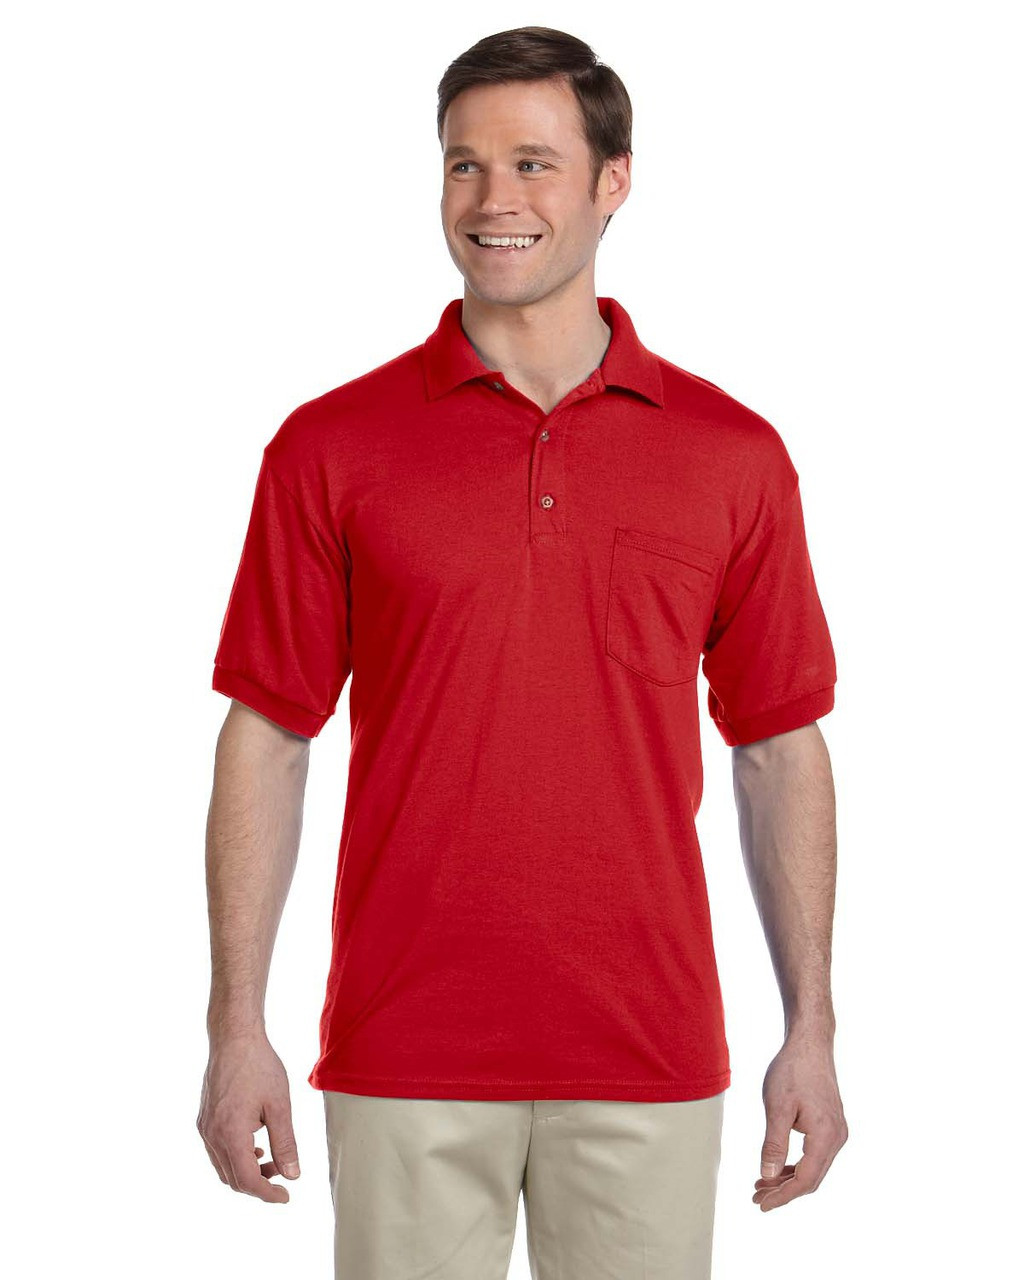 Red - G890 Gildan DryBlend® 50/50 Jersey Polo Shirt with Pocket | Blankclothing.ca